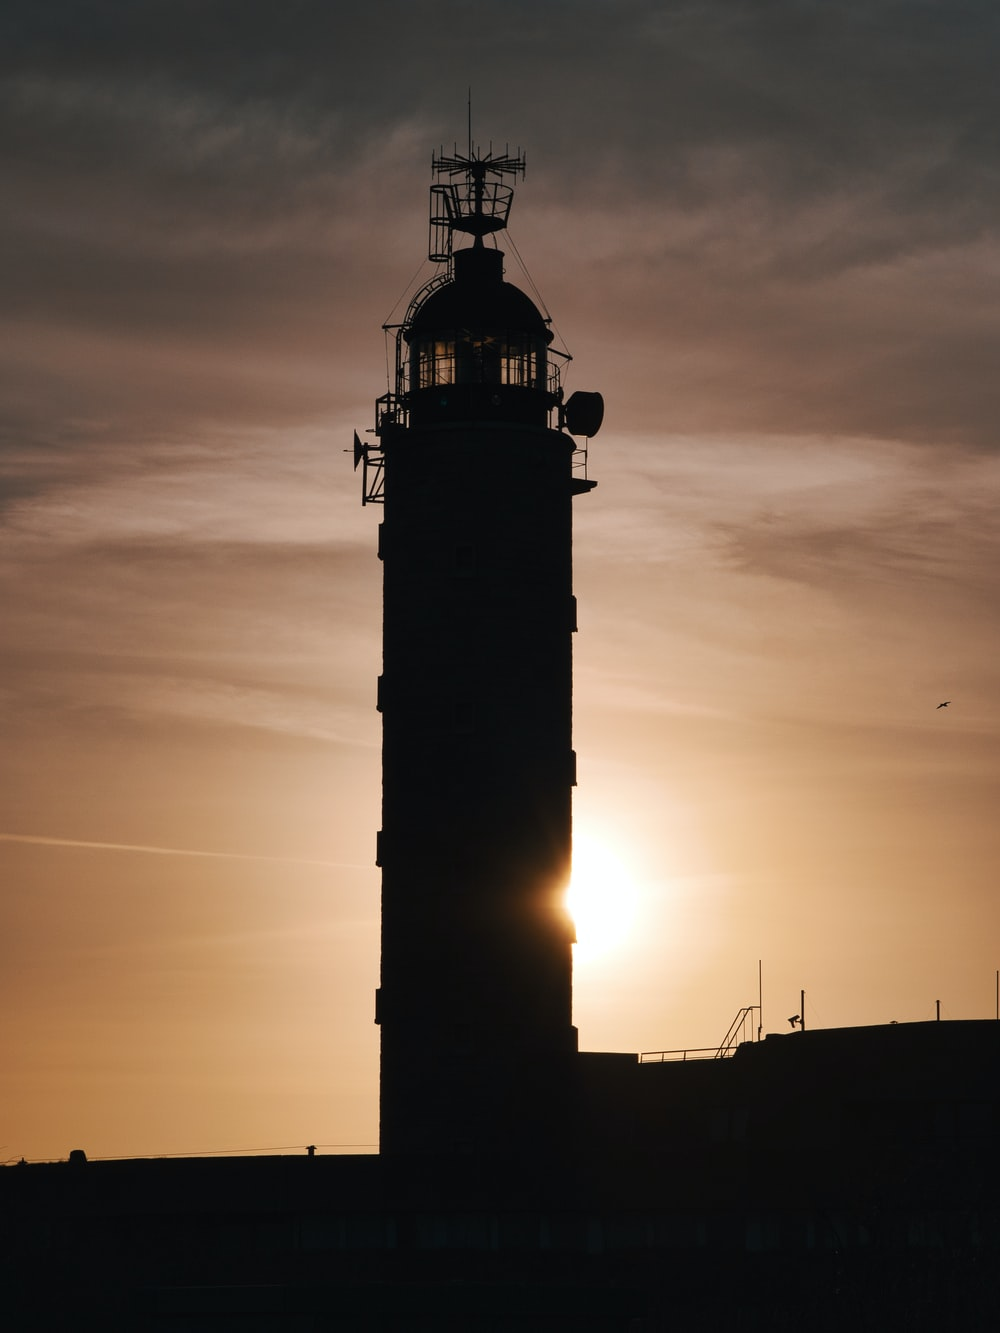 silhouette of a lighthouse during sunset